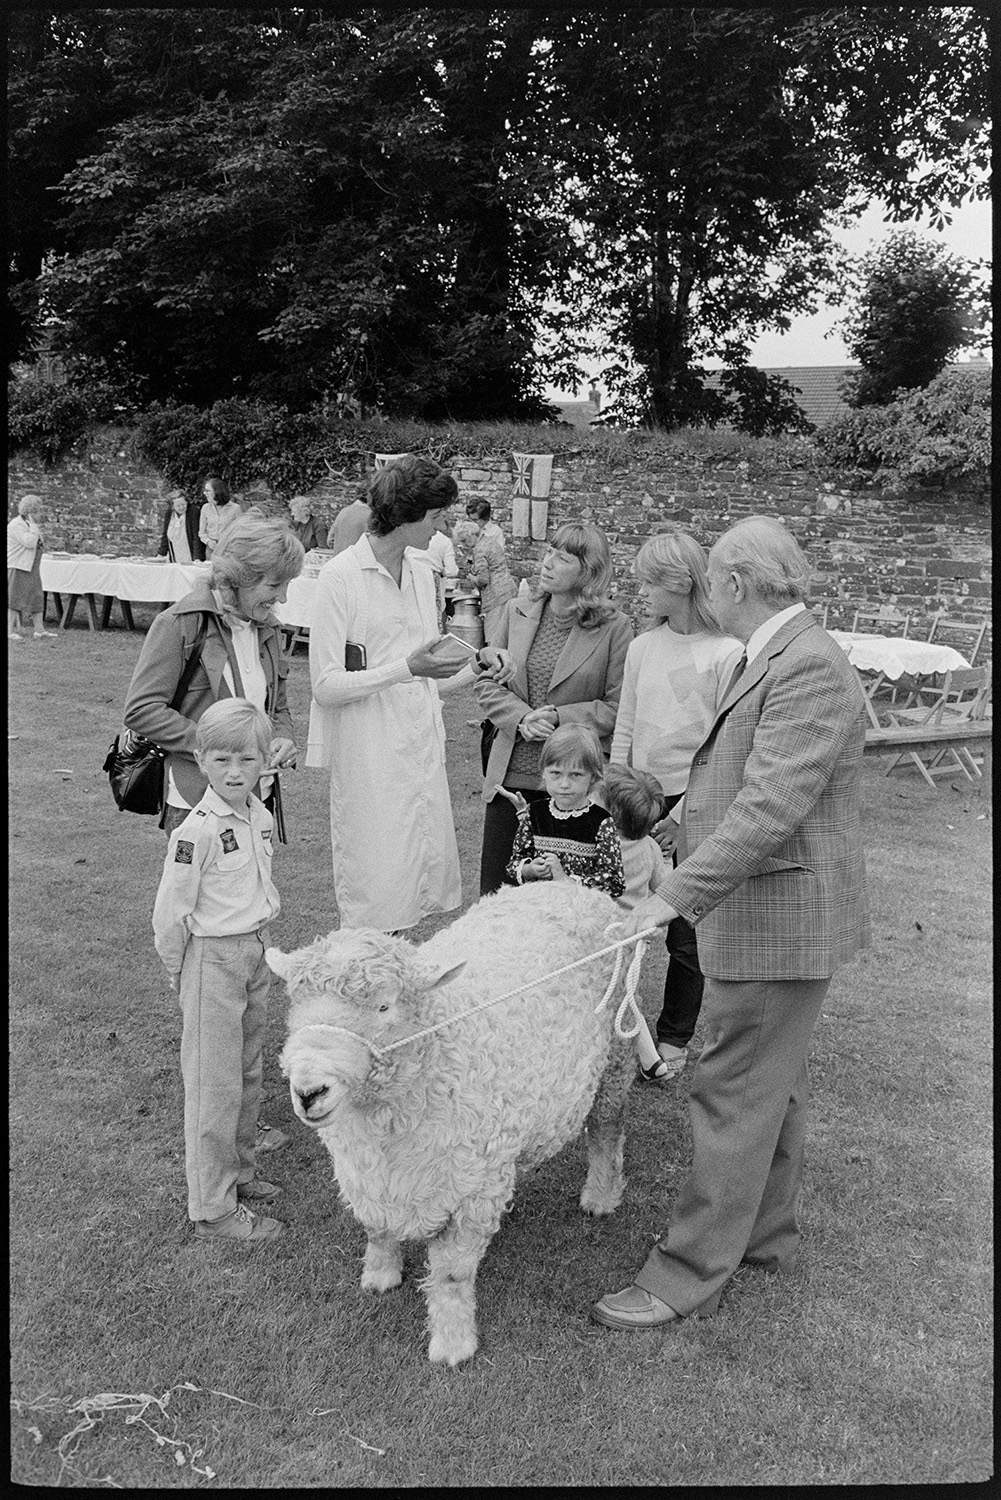 Village revel, fete, women at cake stall, guessing weight of ram, side shows, brass band.<br /> [Women and children at Beaford Revel guessing weight of a ram, on Beaford Village Green. A man is holding the ram. Stalls and trees can be seen in the background.]